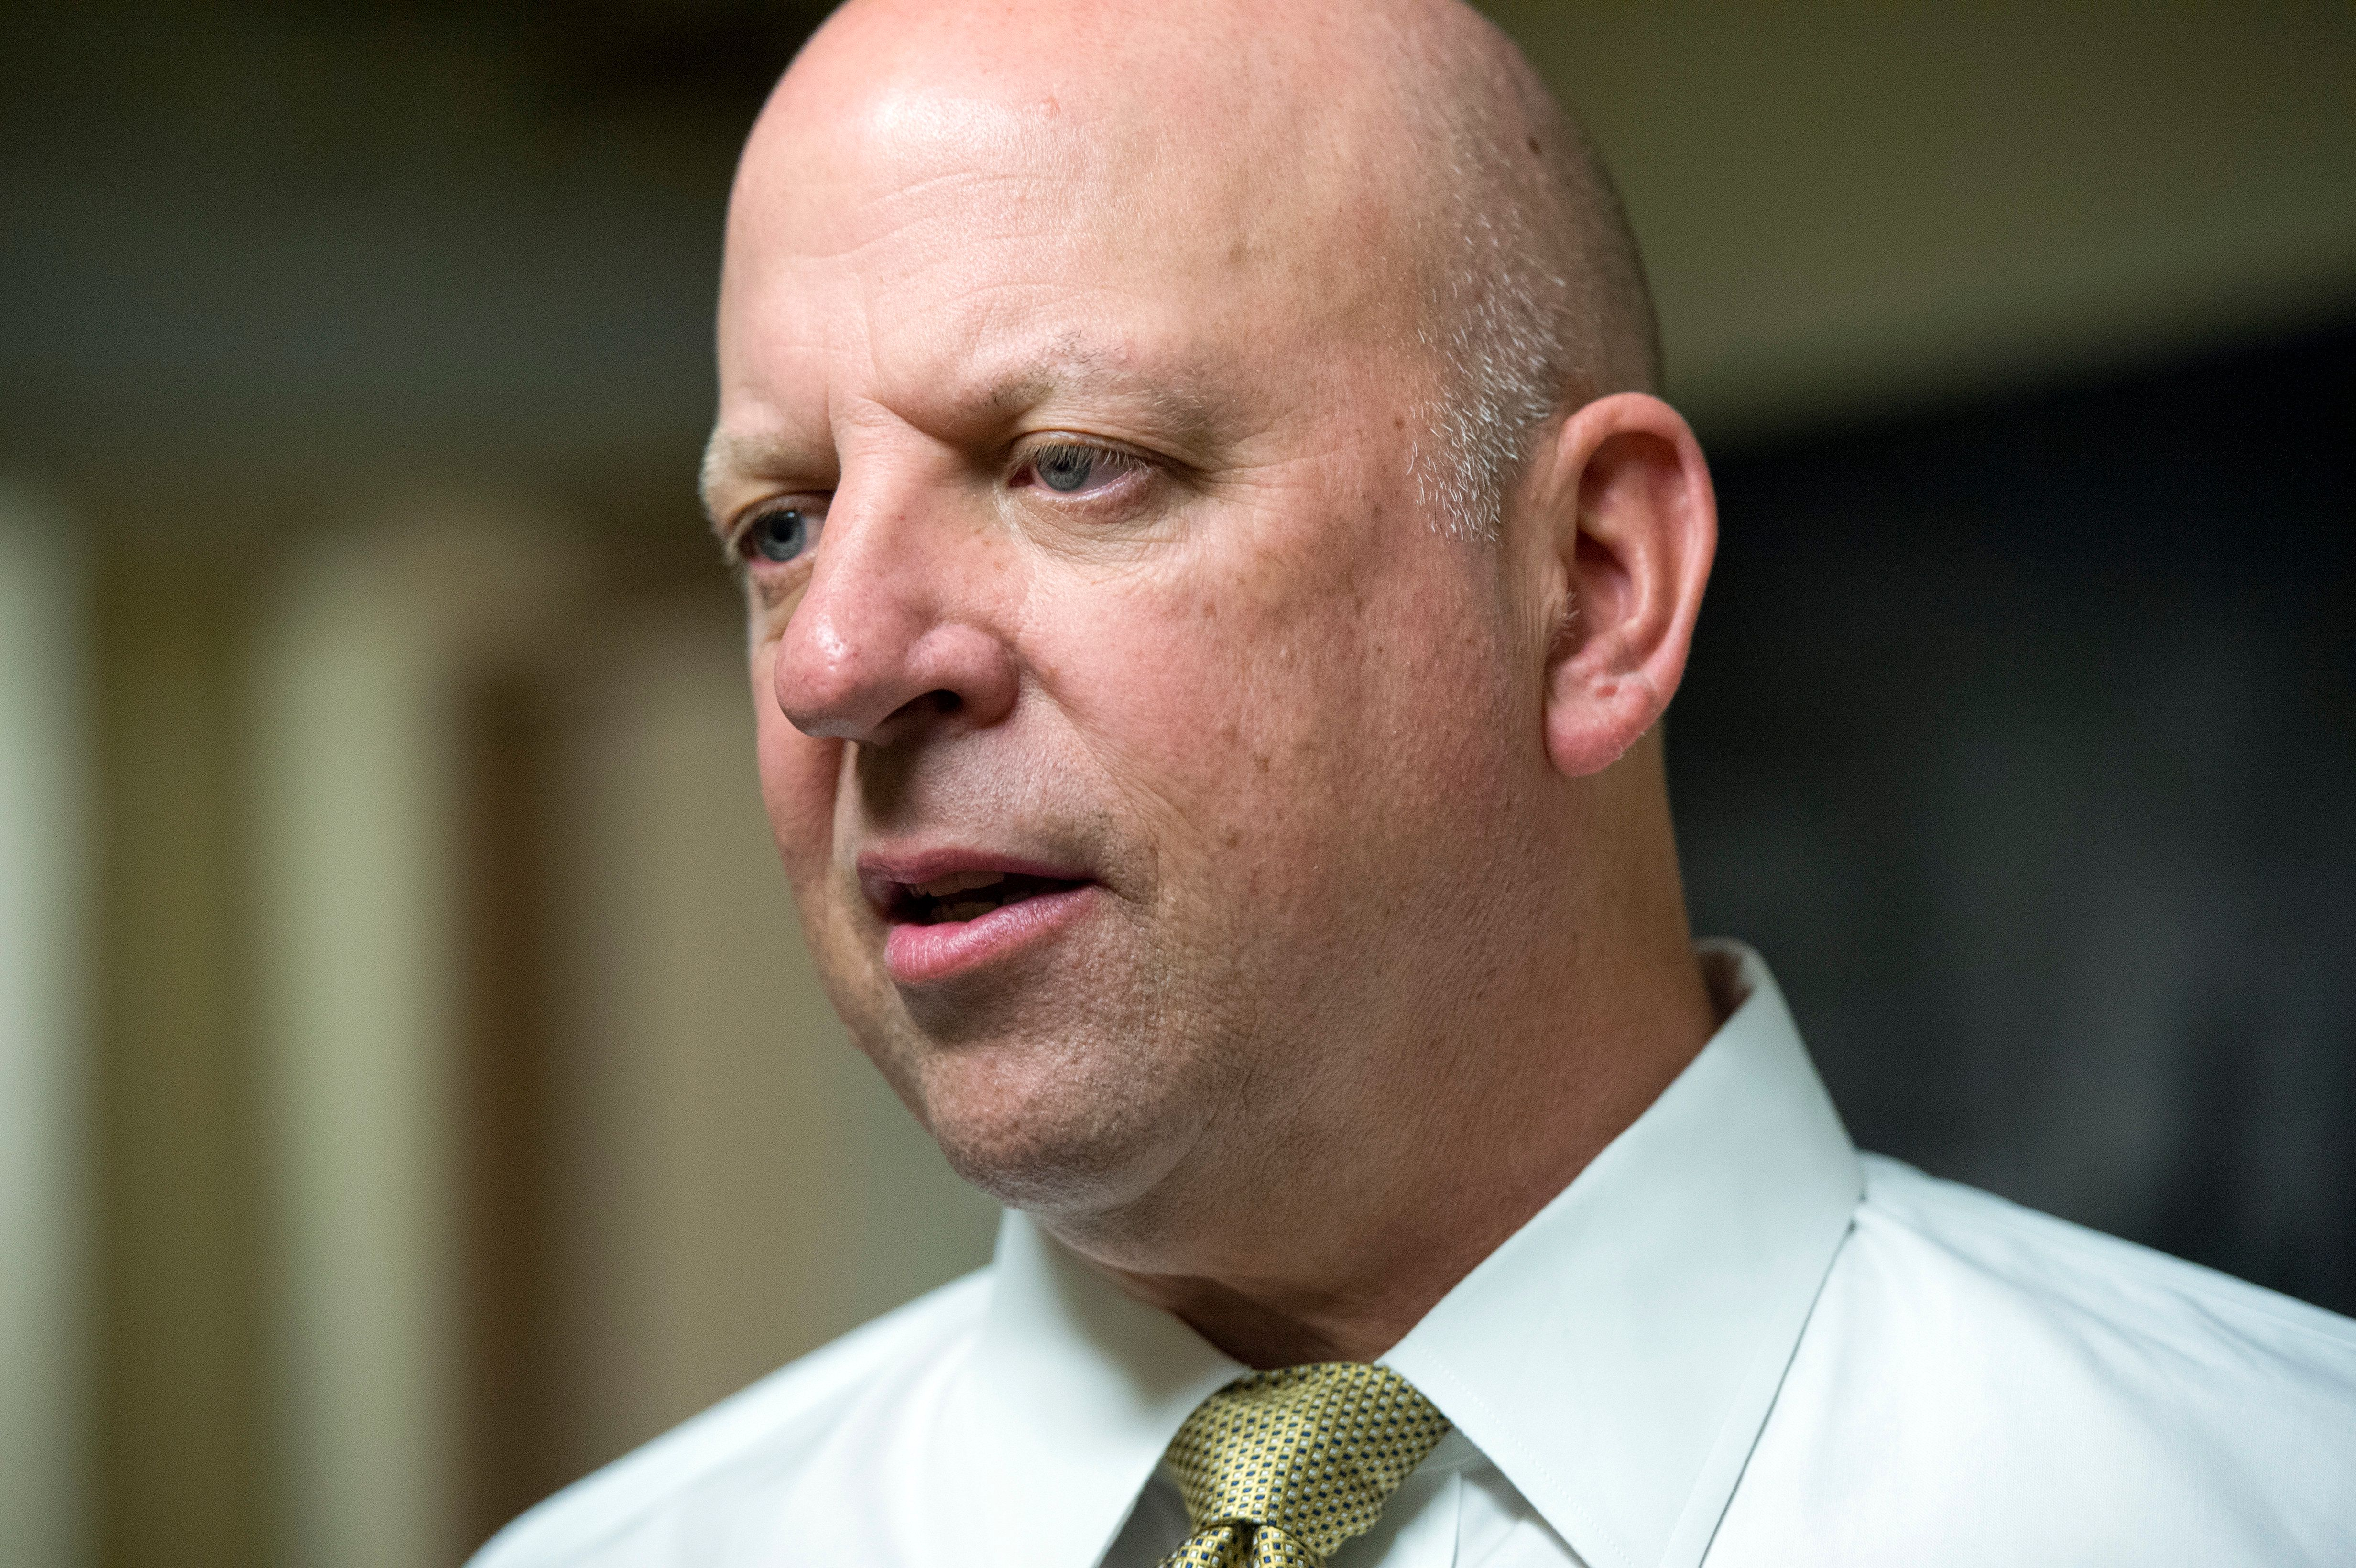 UNITED STATES - MAY 17: Rep. Scott Desjarlais, R-Tenn., talks with reporters after a meeting of the House Republican Conference in the Capitol, May 17, 2016. (Photo By Tom Williams/CQ Roll Call)